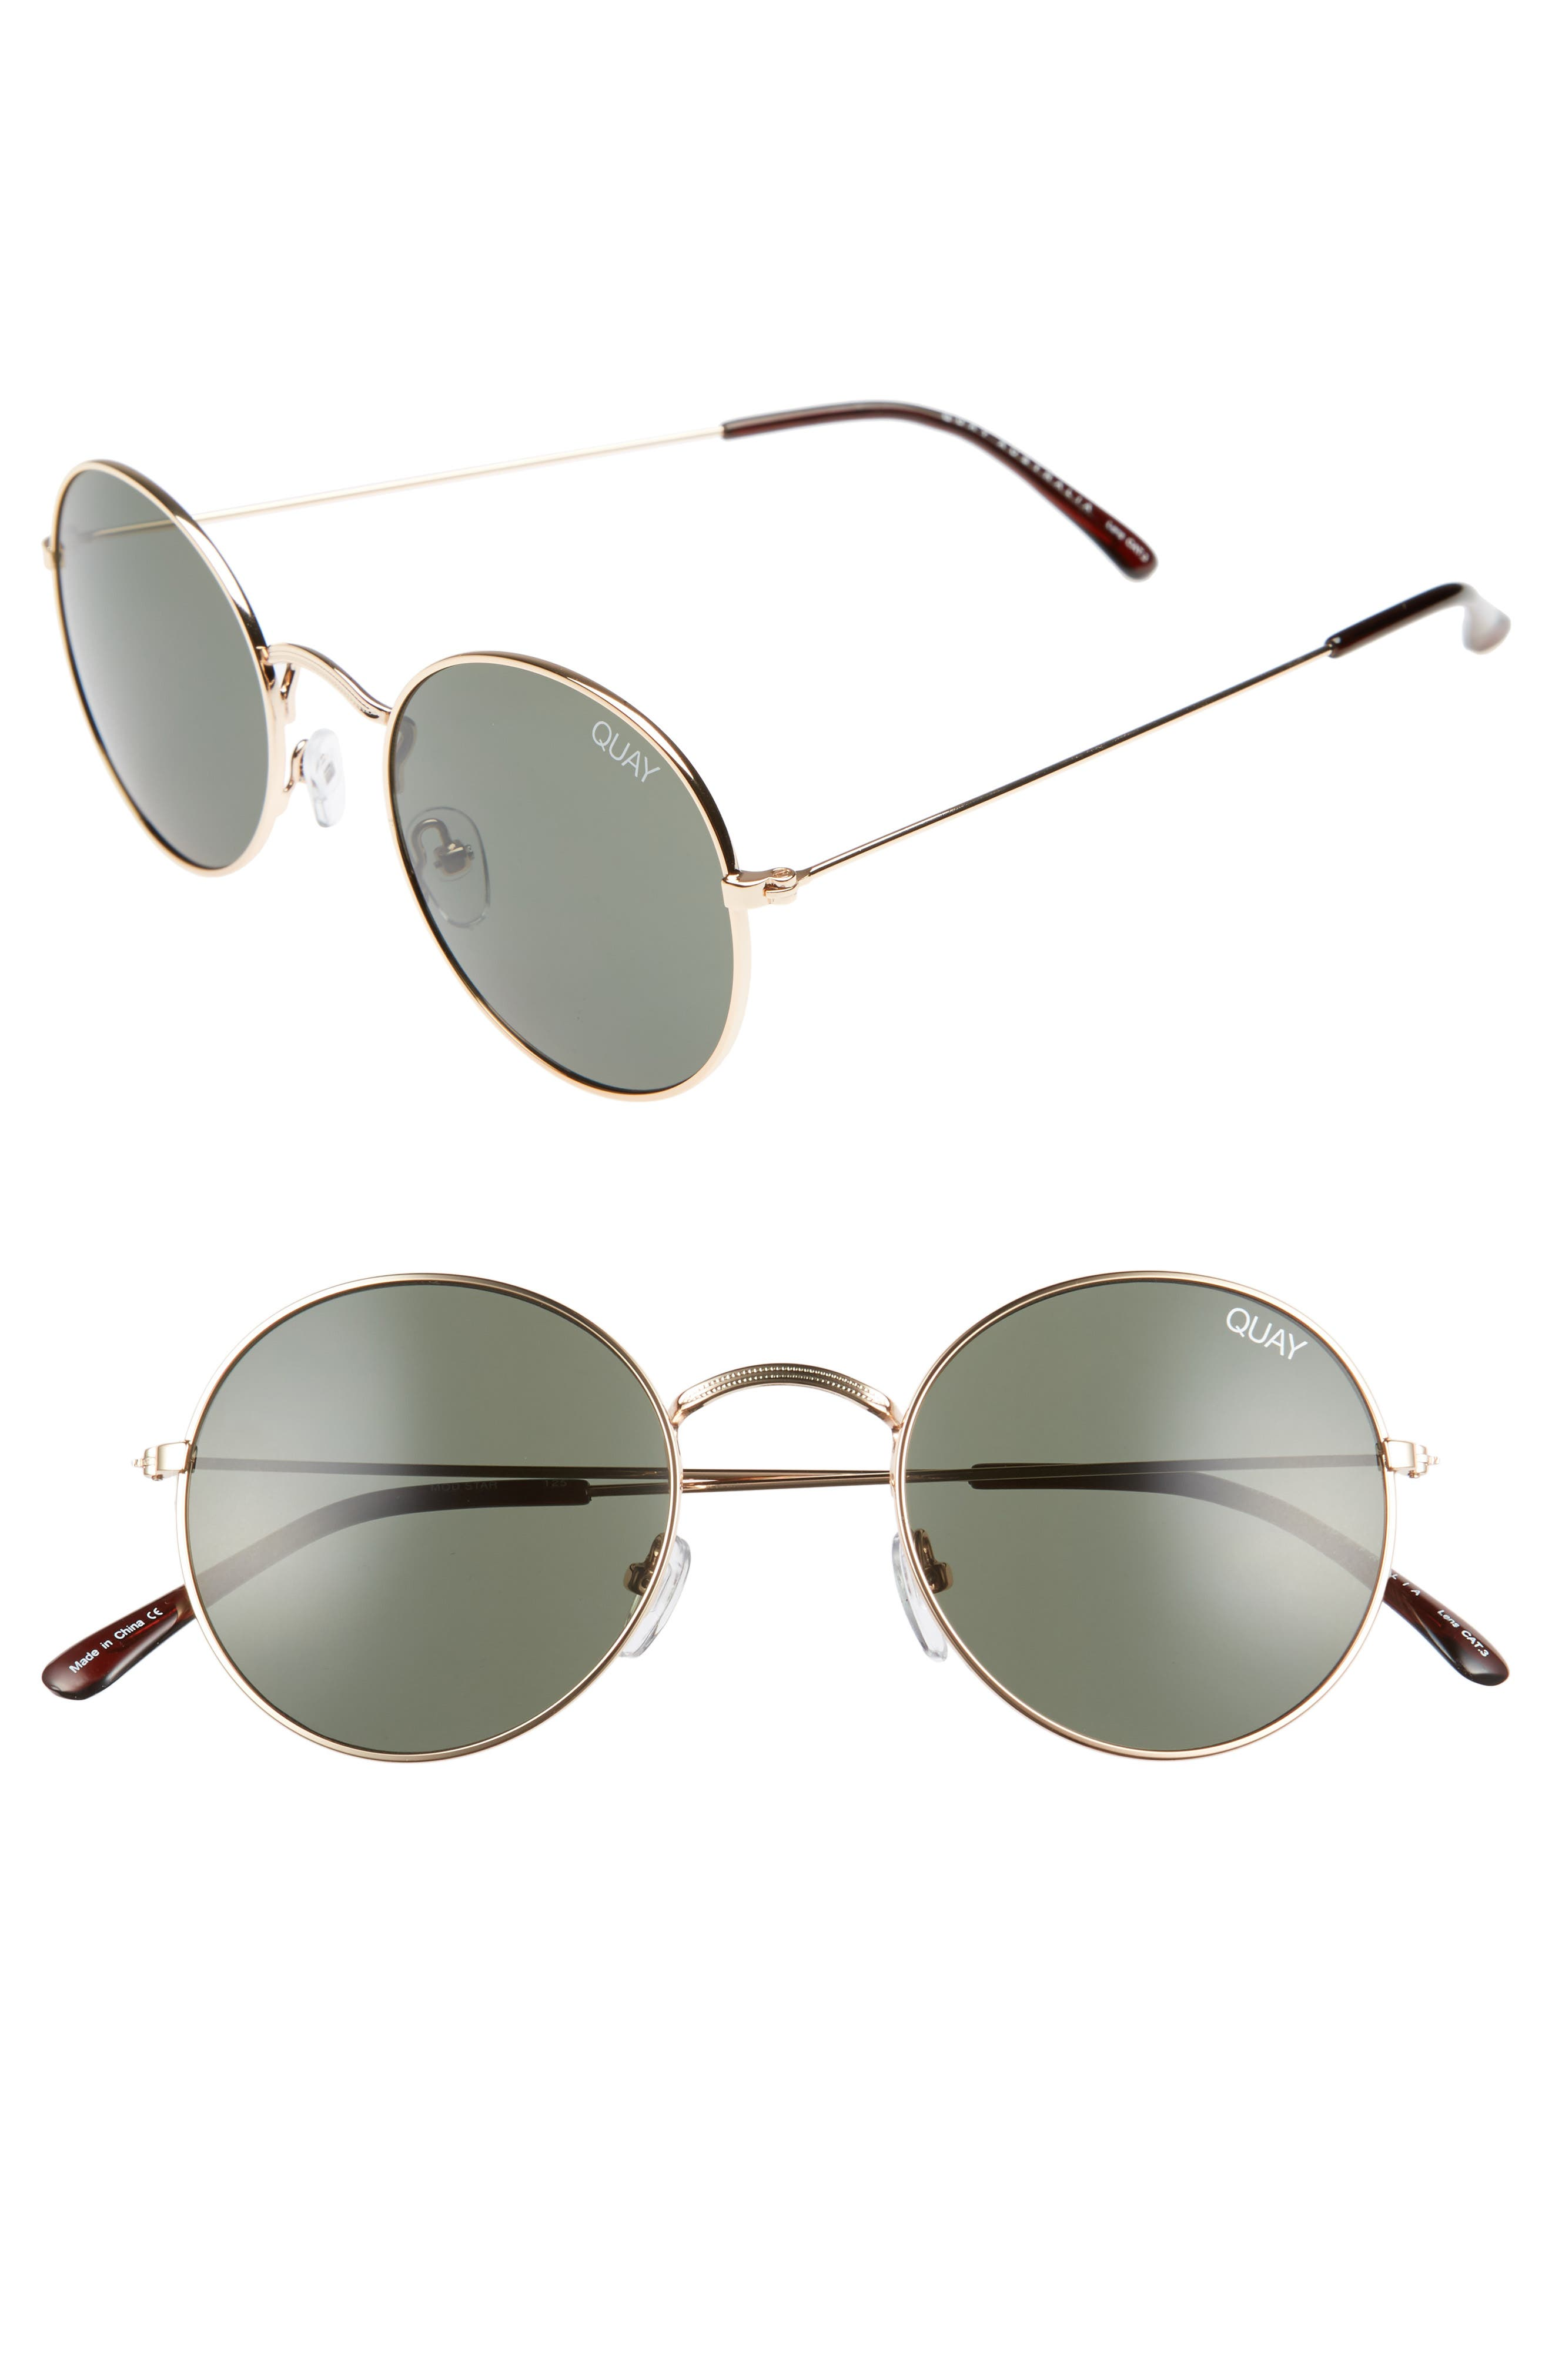 50mm Mod Star Round Sunglasses,                             Main thumbnail 1, color,                             Gold/ Green